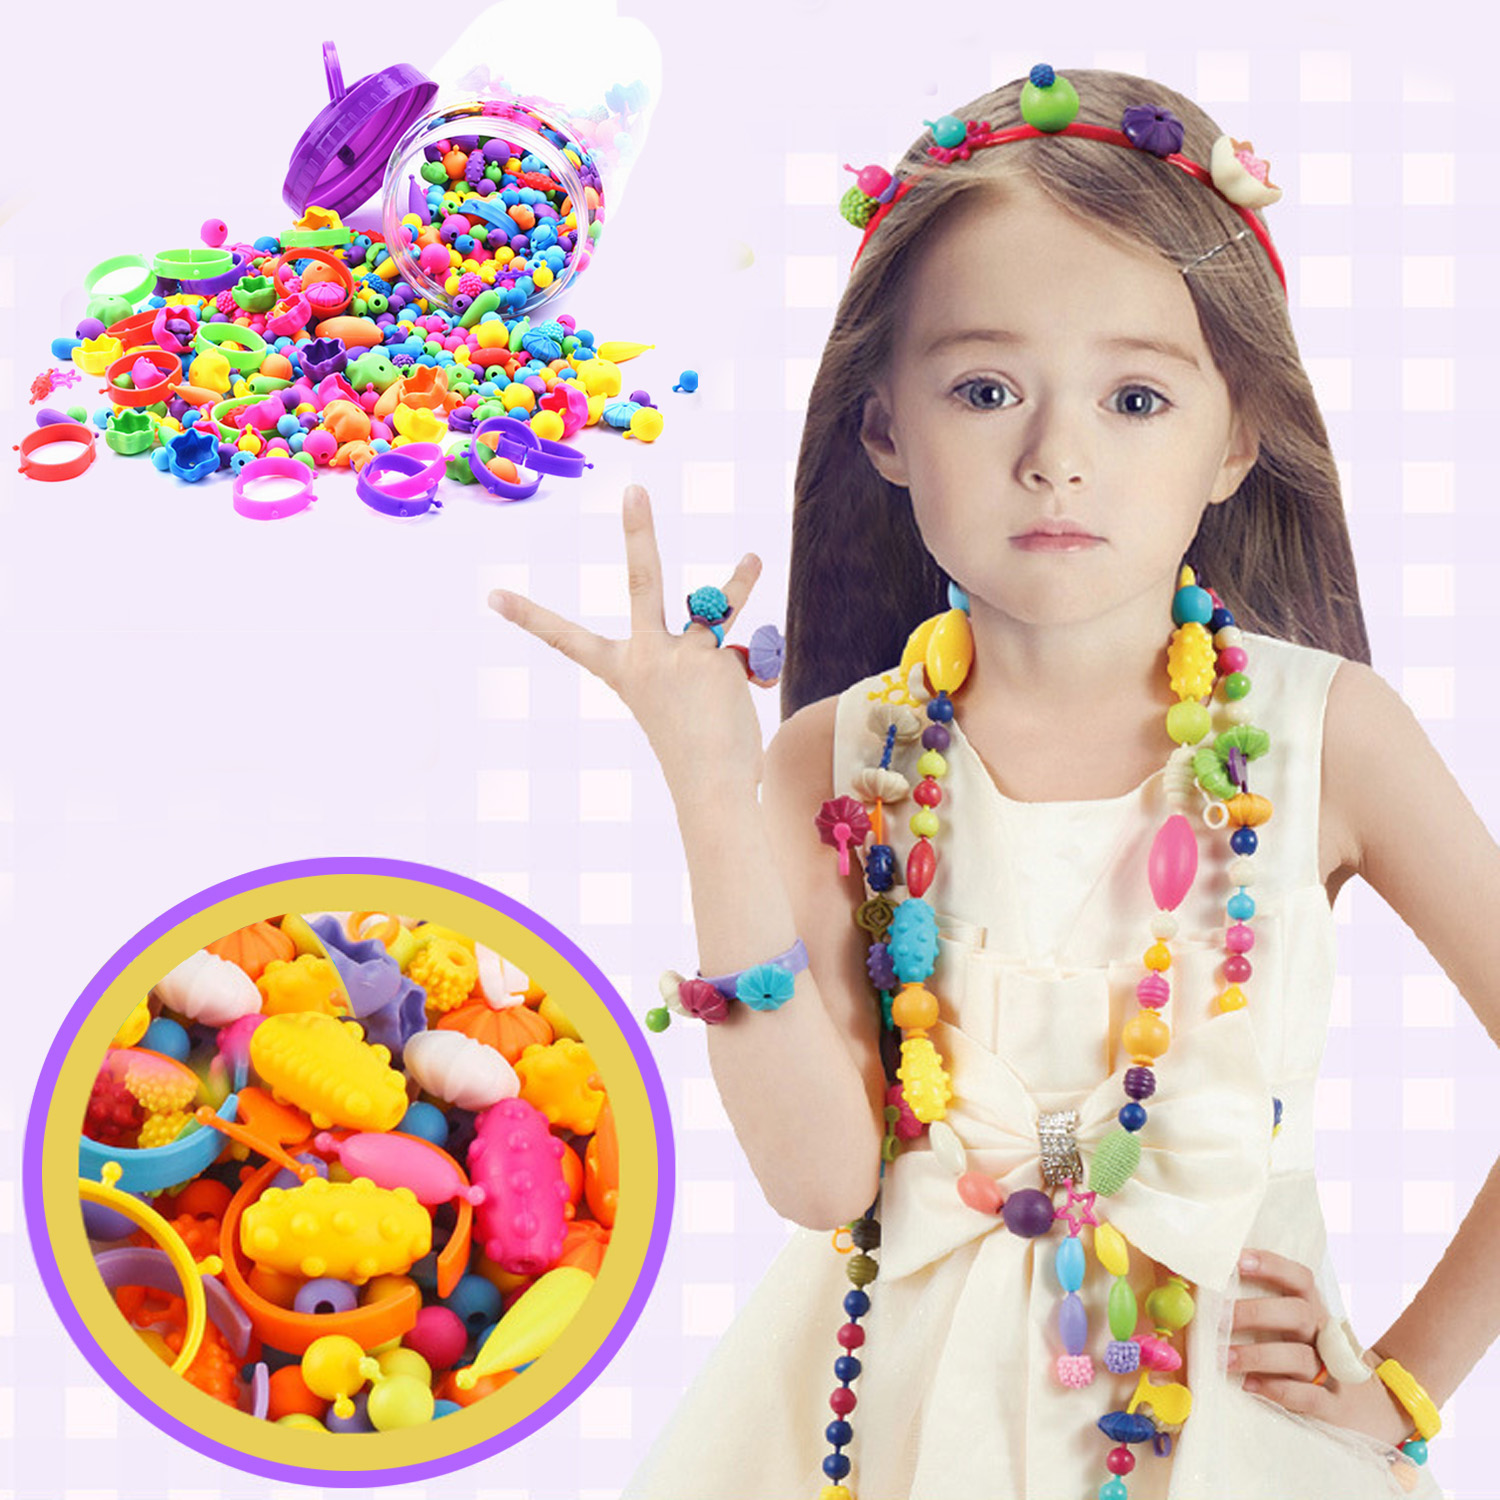 Besegad 260Pcs Colorful Fashion Assorted Shapes Plastic Pop Snap Beads Set Kids Girls DIY Bead Toys Gift Bracelets Manual Making